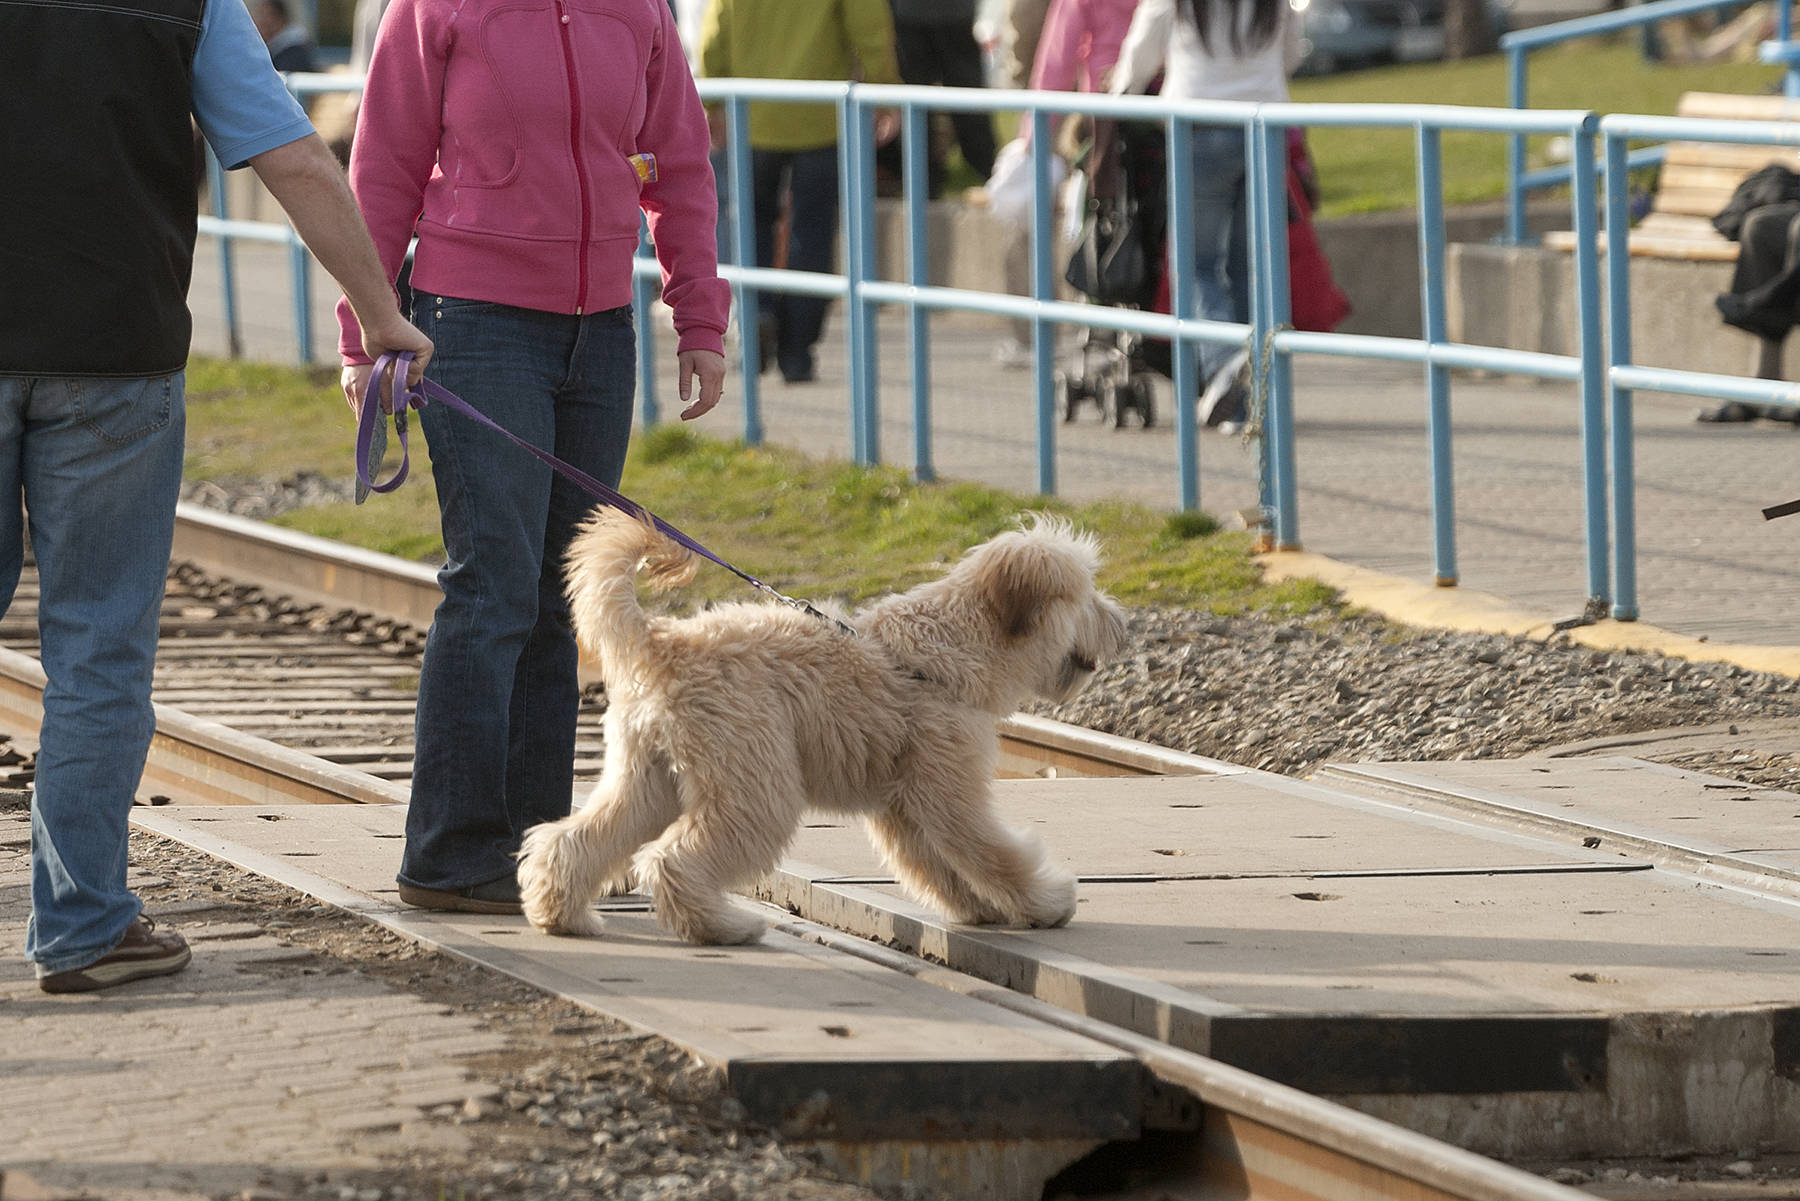 Dogs will be allowed on the White Rock Promenade starting Oct. 1. (File photo)